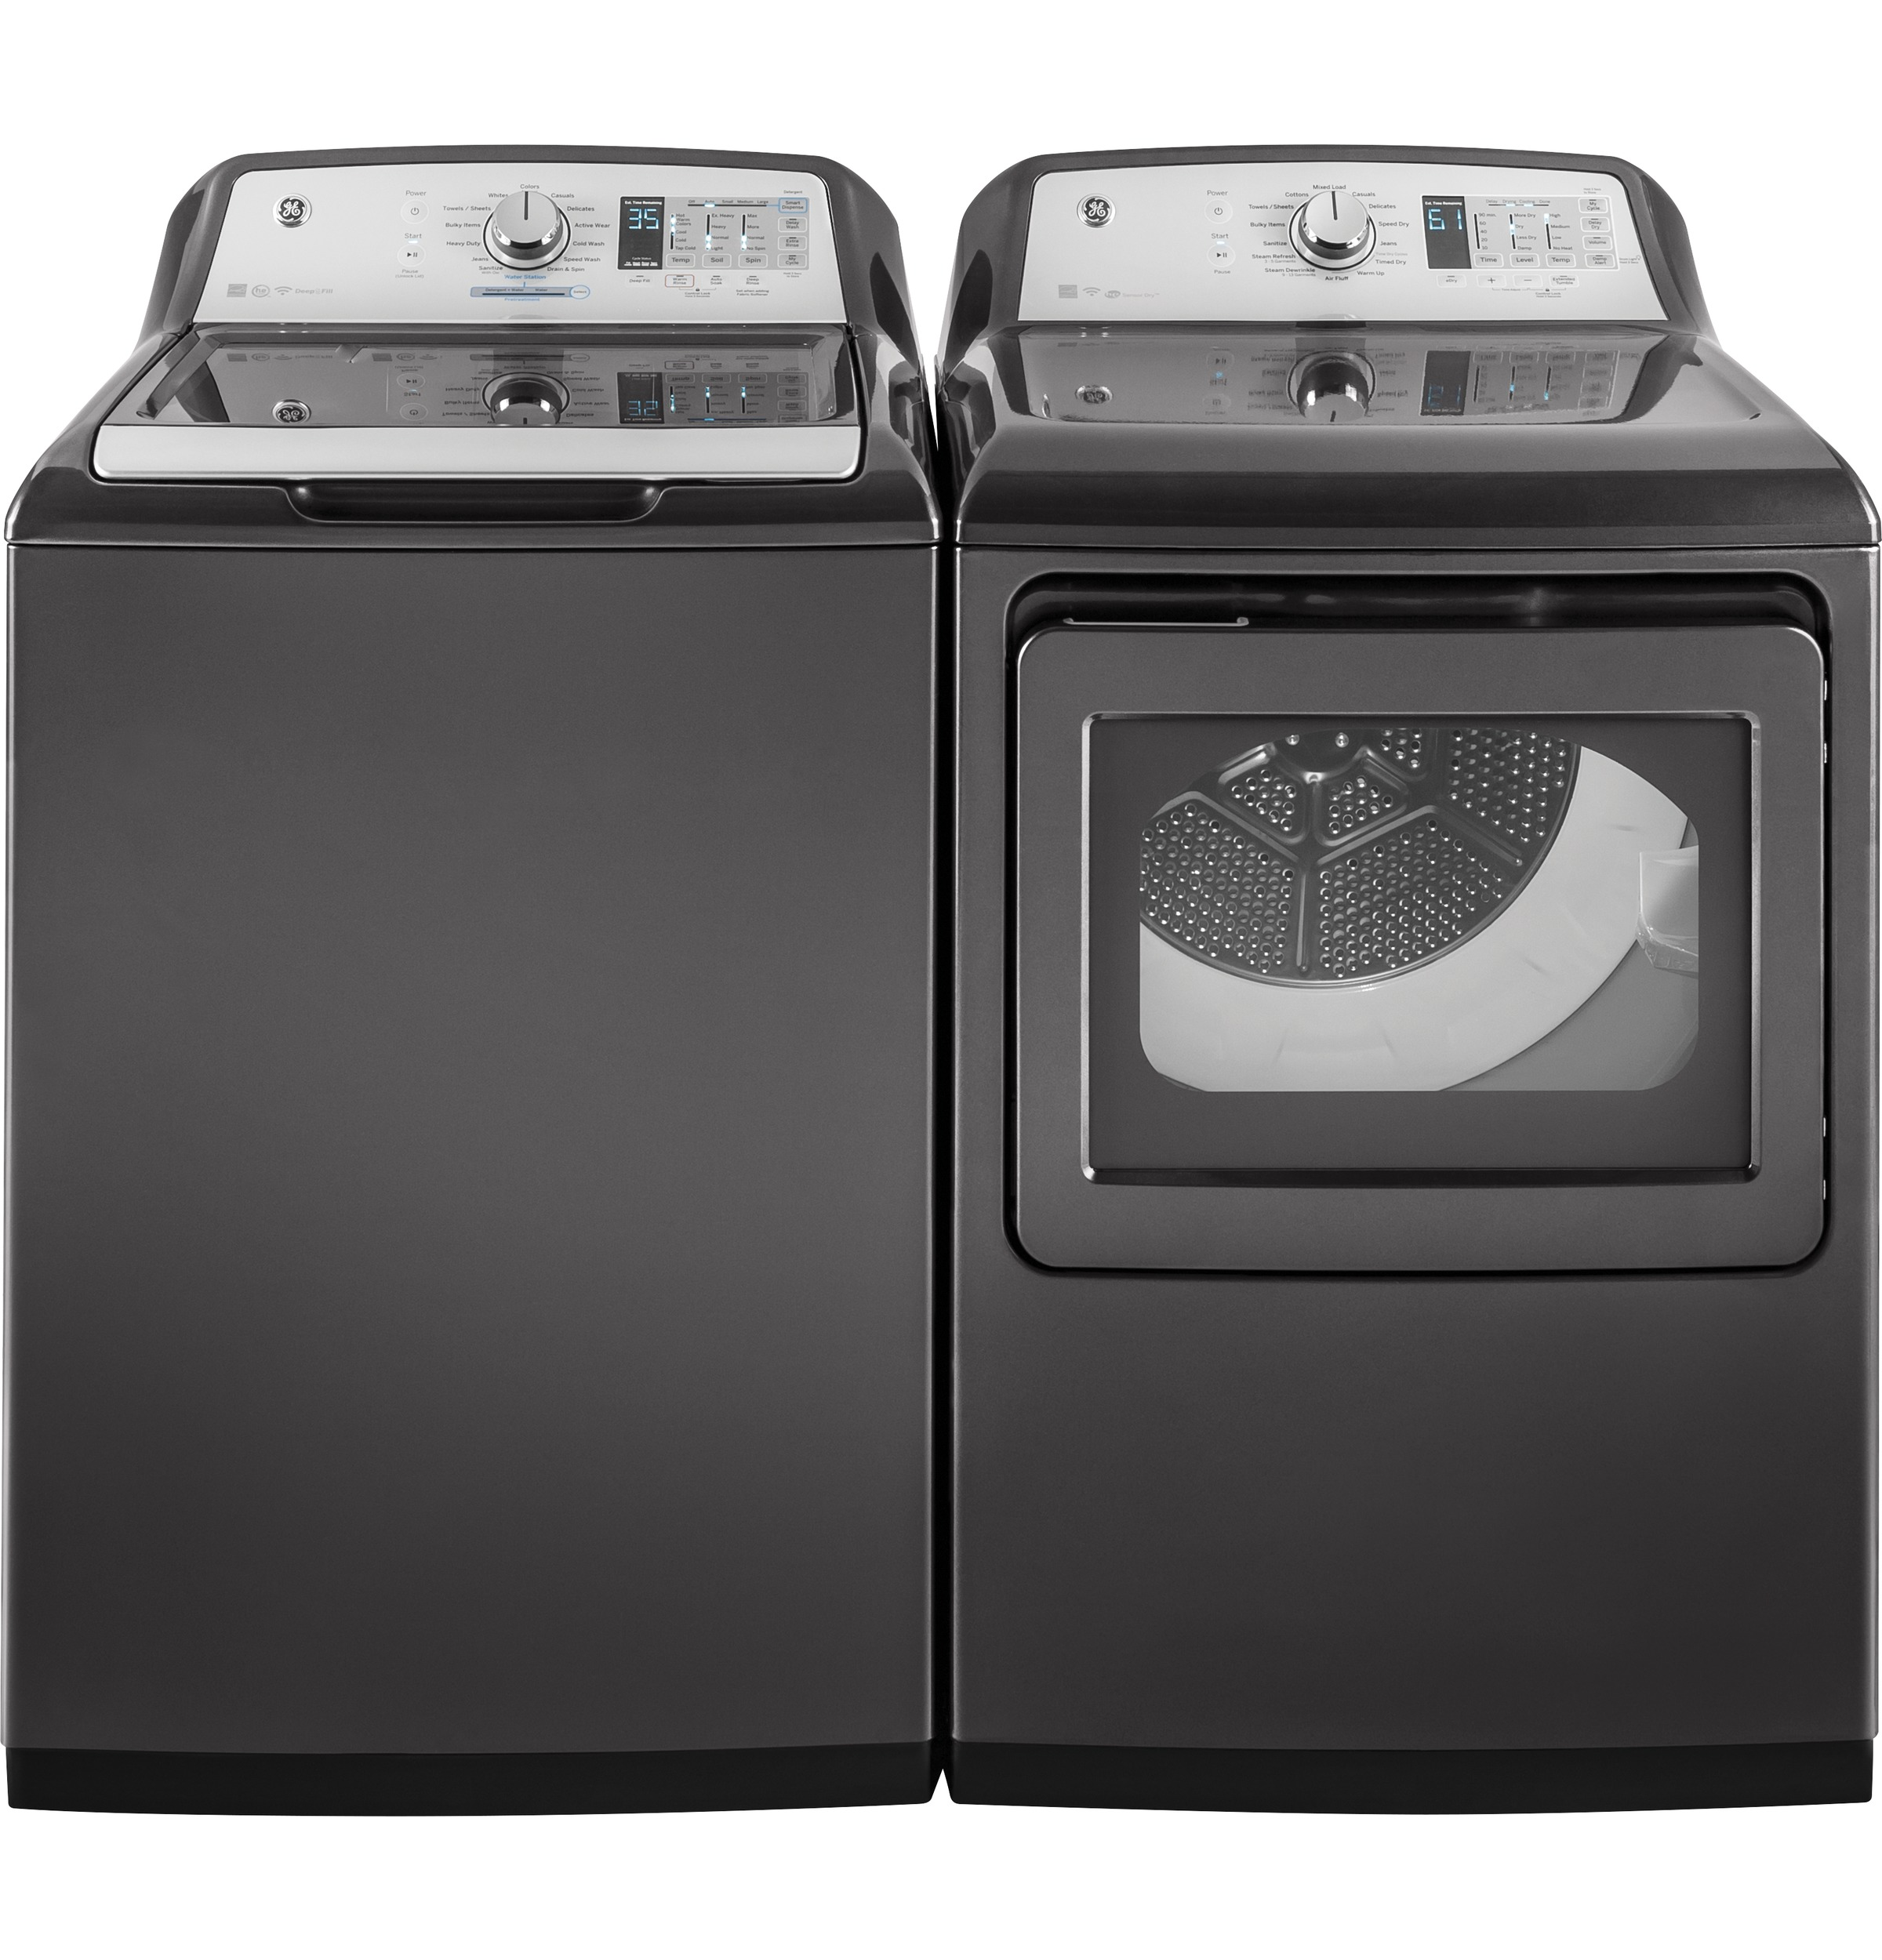 Model: GTW750CPLDG | GE® 5.0  cu. ft. Capacity Washer with Stainless Steel Basket